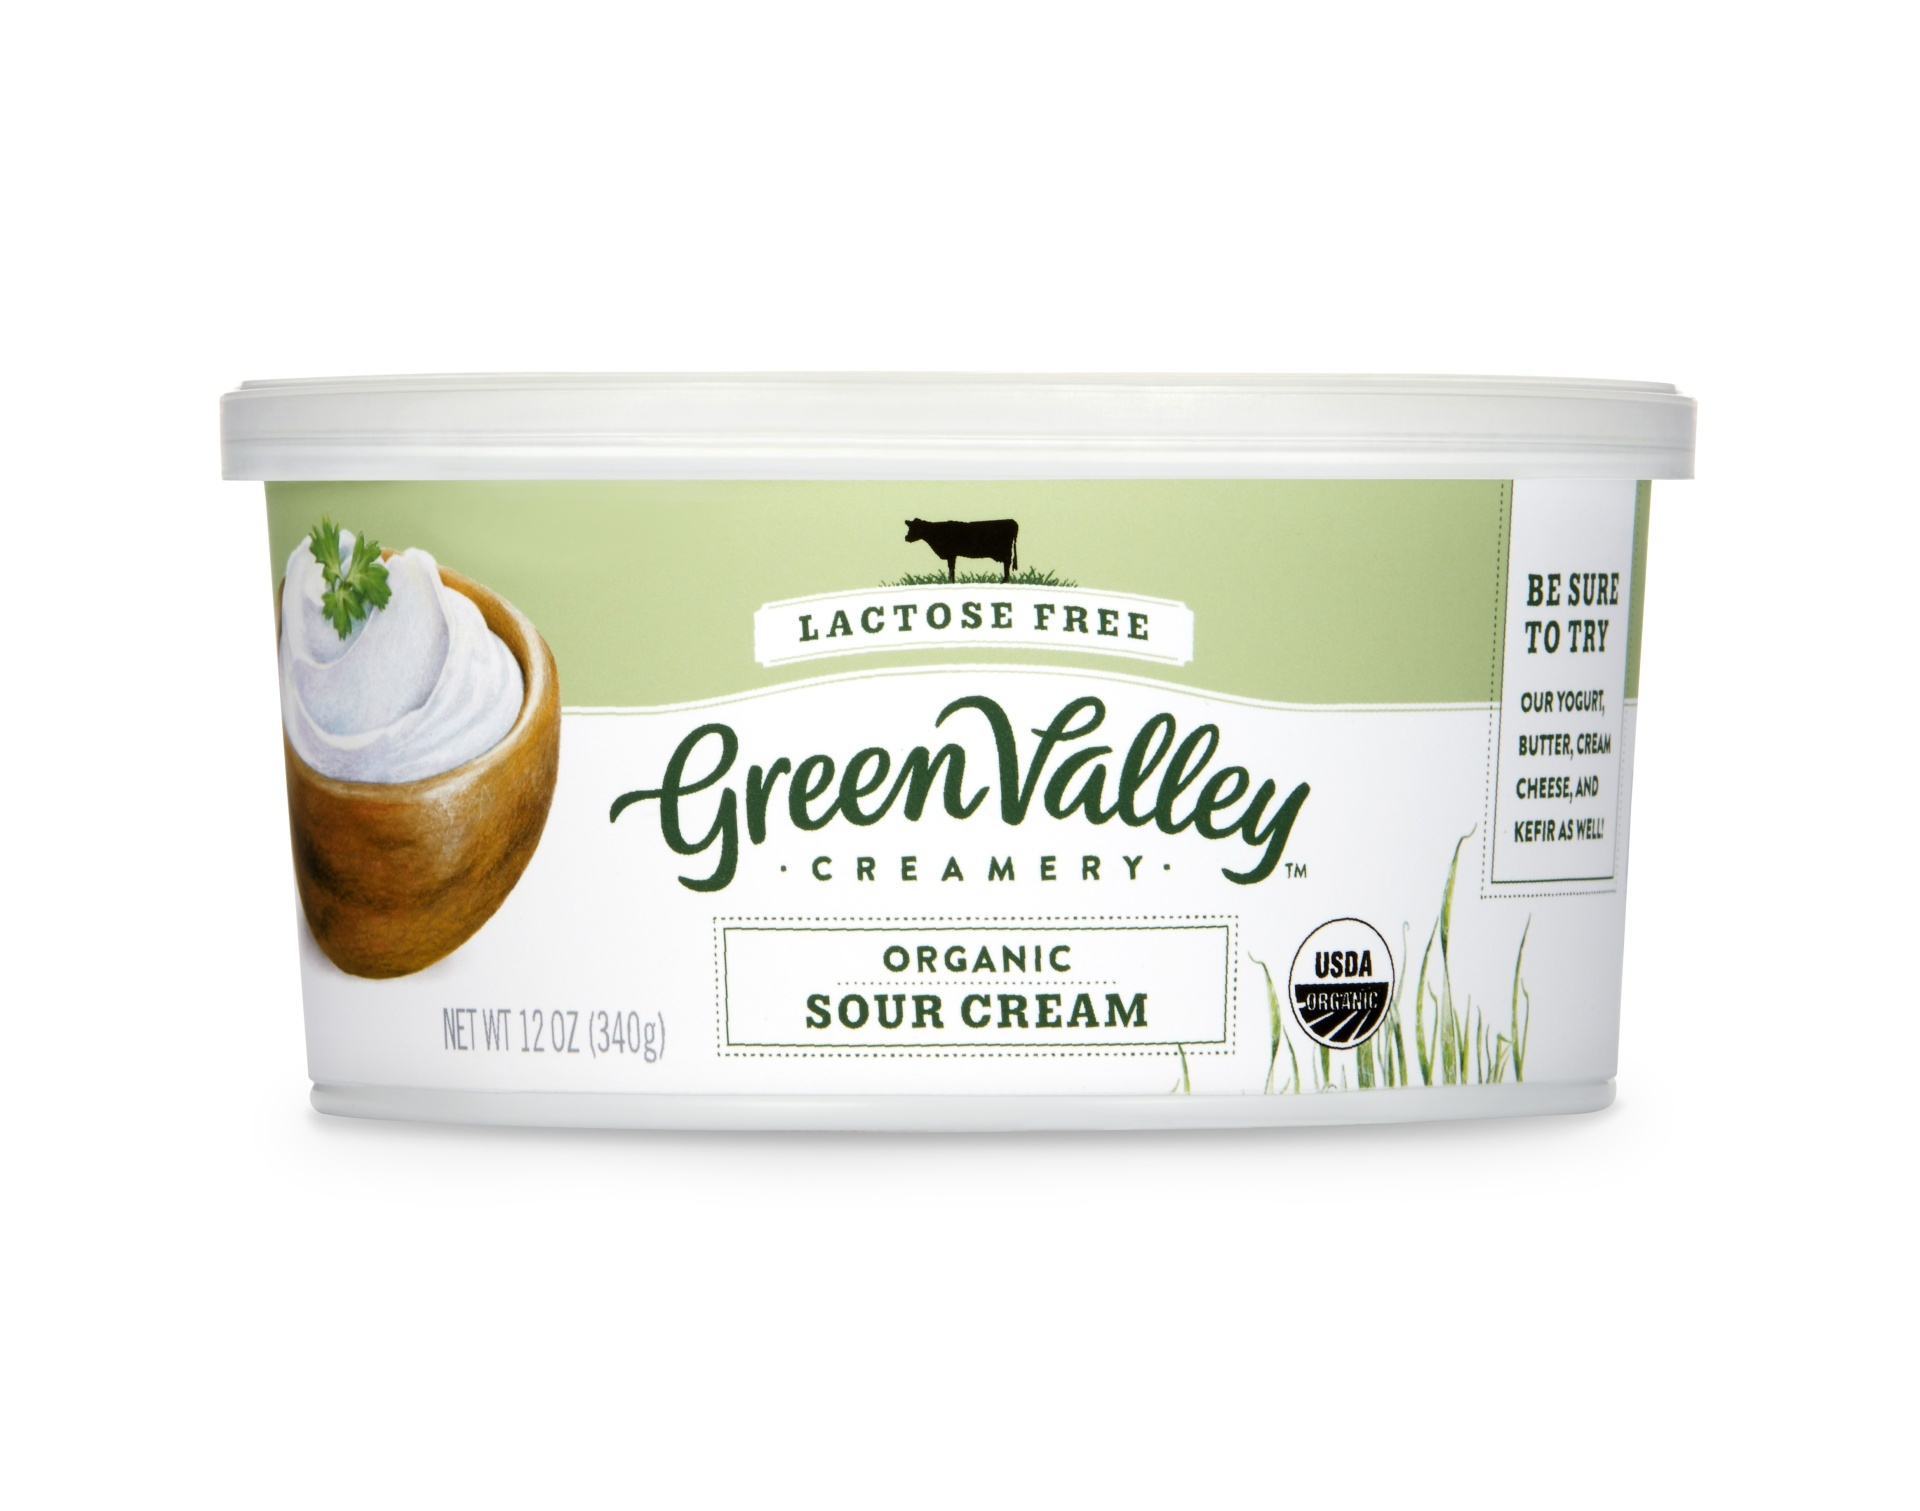 slide 1 of 2, Green Valley Creamery Organic Gluten Free Sour Cream,